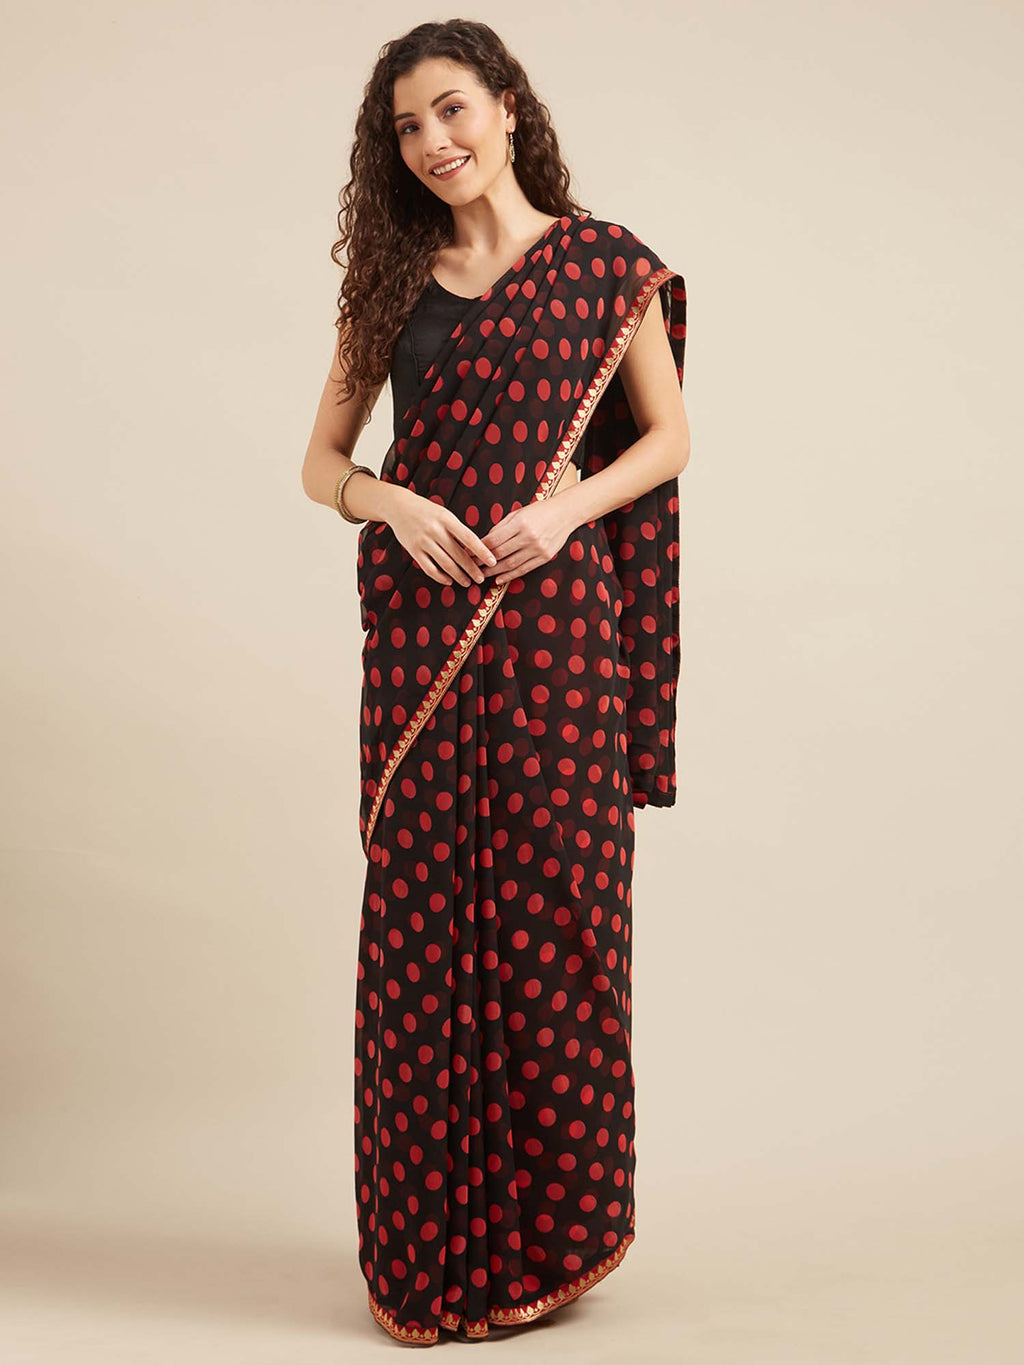 Black and Red Poly georgette Polka dots print with Printed Lace and Solid Dupion Blouse - Riviera Closet